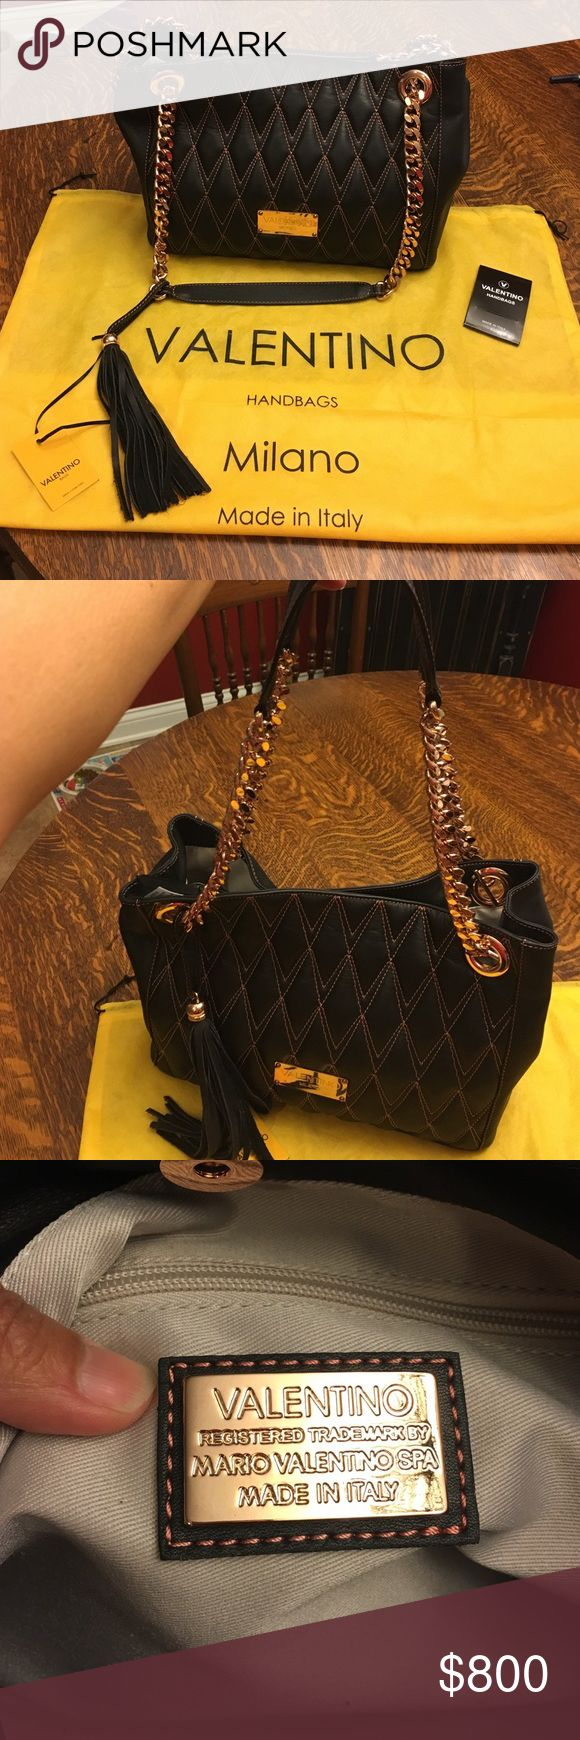 Authentic Valentino Bag. Gorgeous Valentino black leather bag with quilted front, rose colored stitching, thick rose gold chain and leather straps.  This bag comes with a bag tassel, dust bag and care booklet. Made in Italy. This bag retails for $1,095 and is new with tags attached. Valentino Bags Shoulder Bags